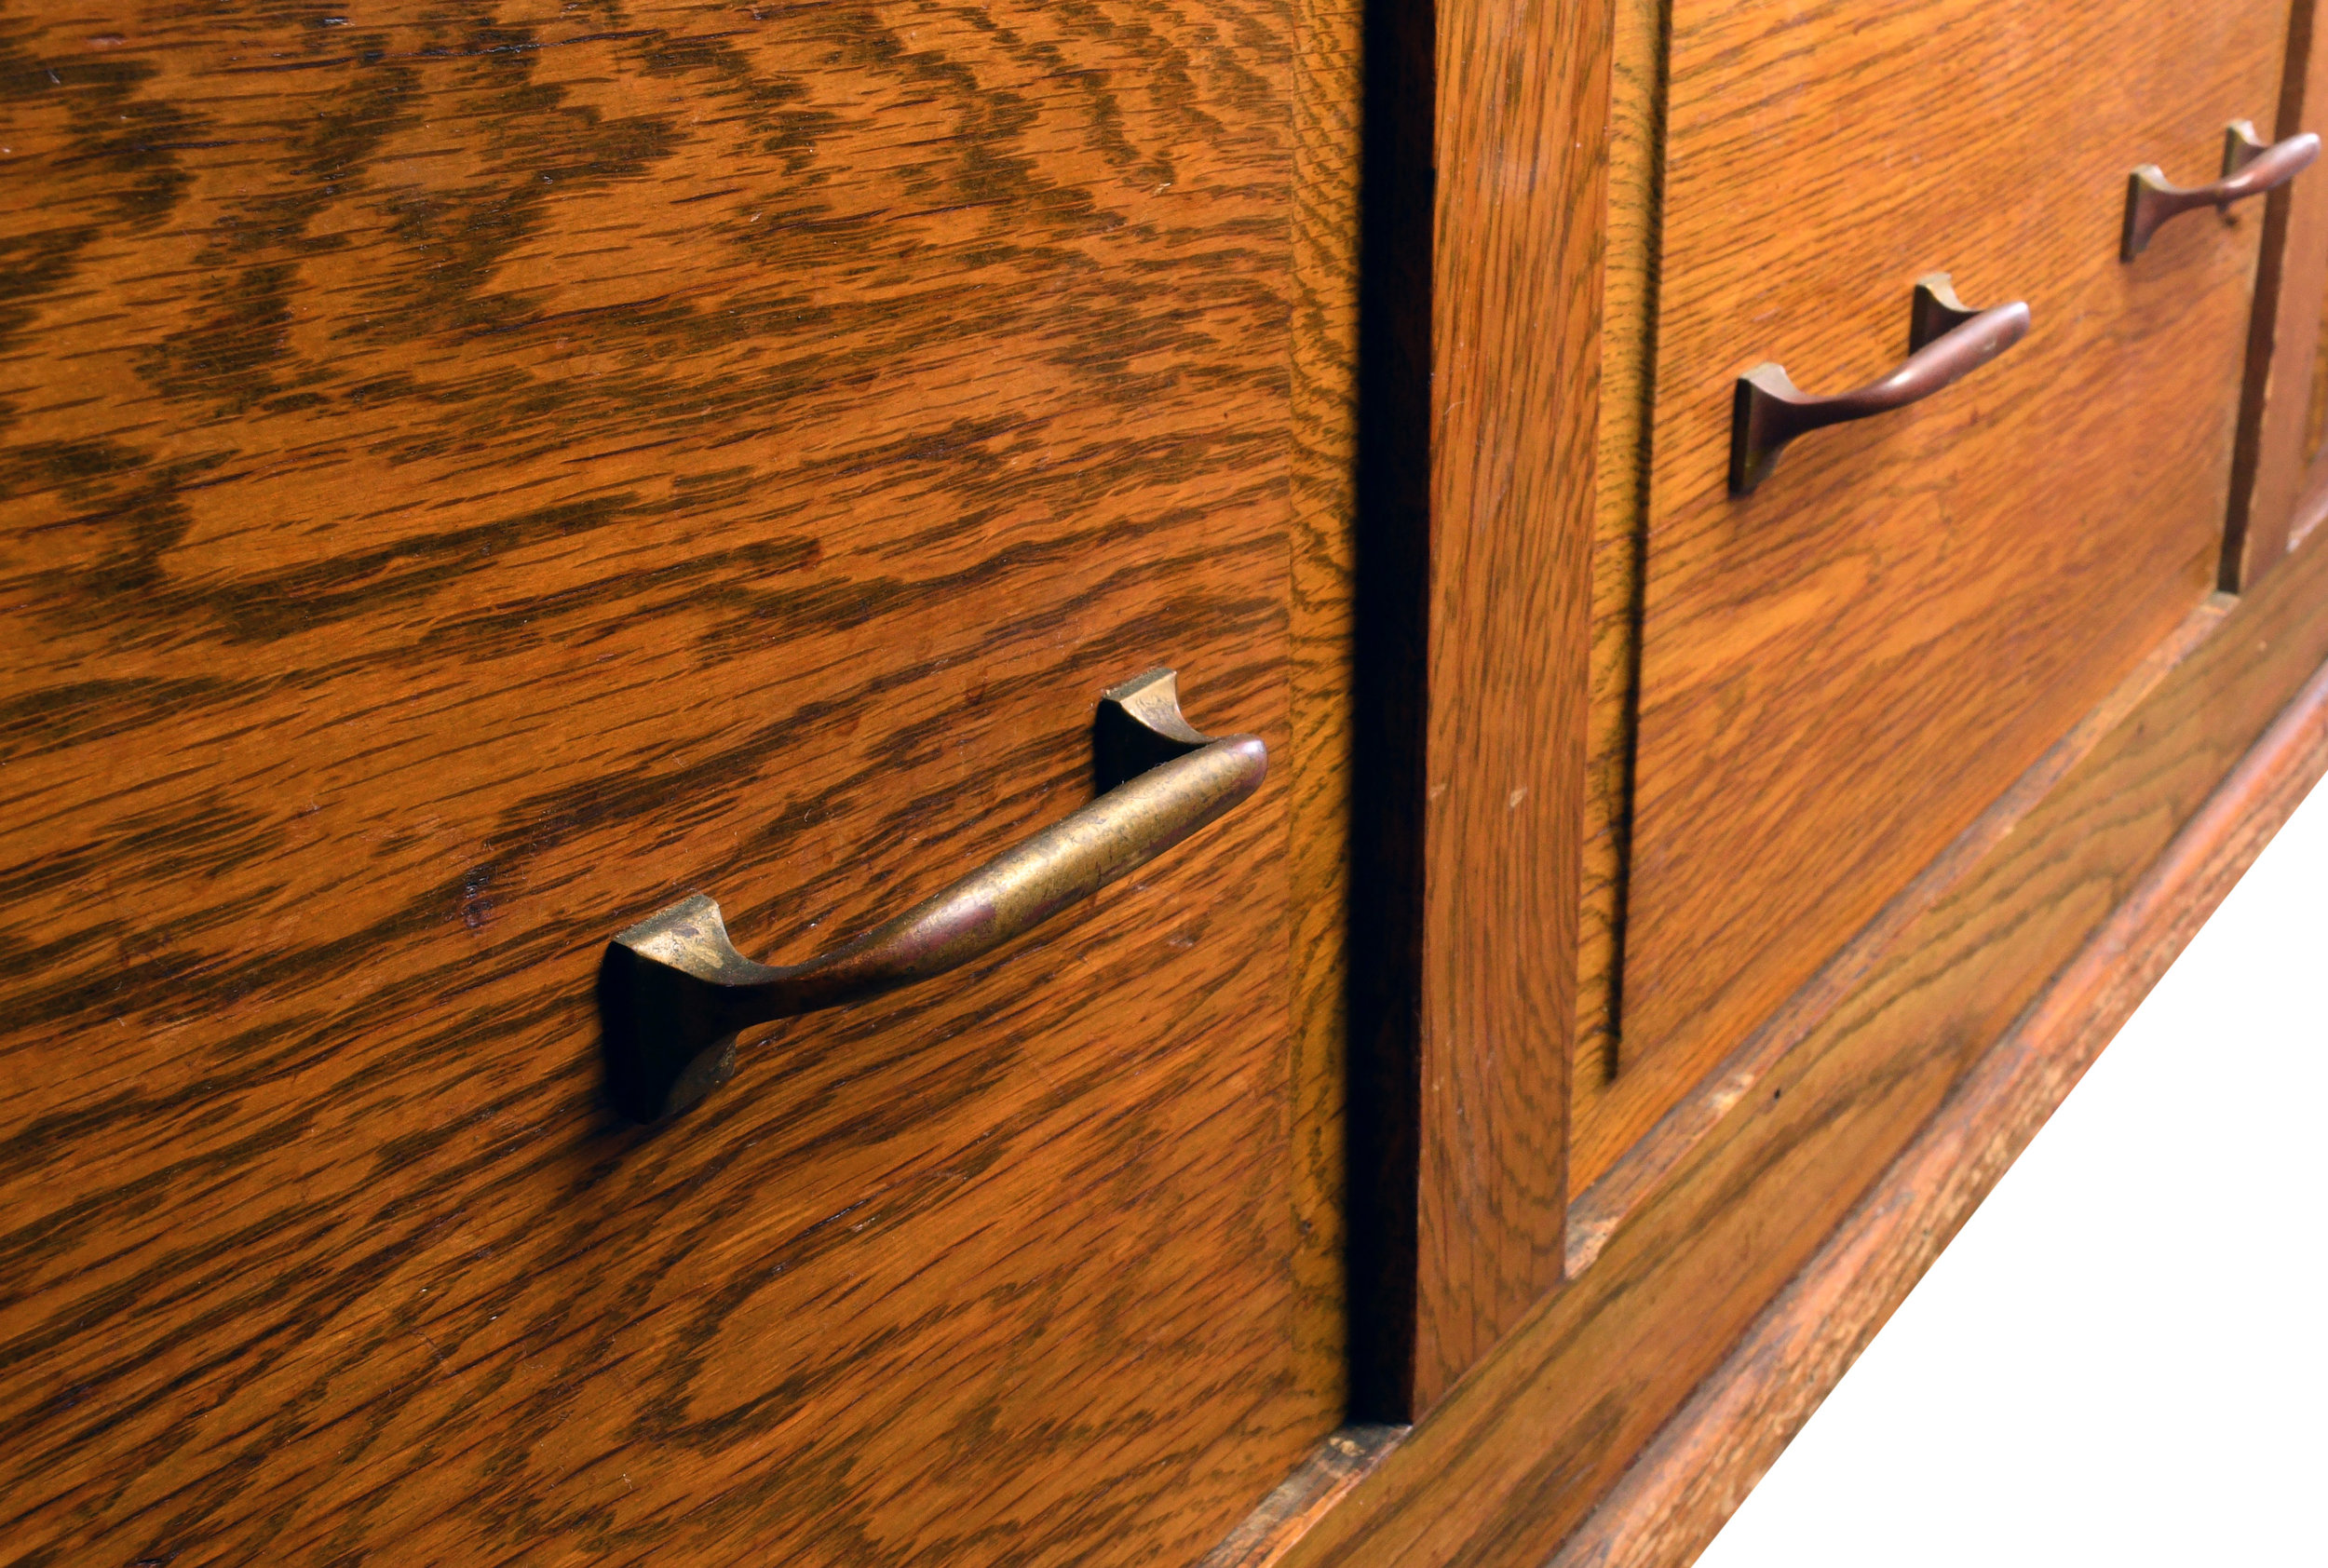 47866-oak-school-cabinet-with-bench-drawer-pull.jpg